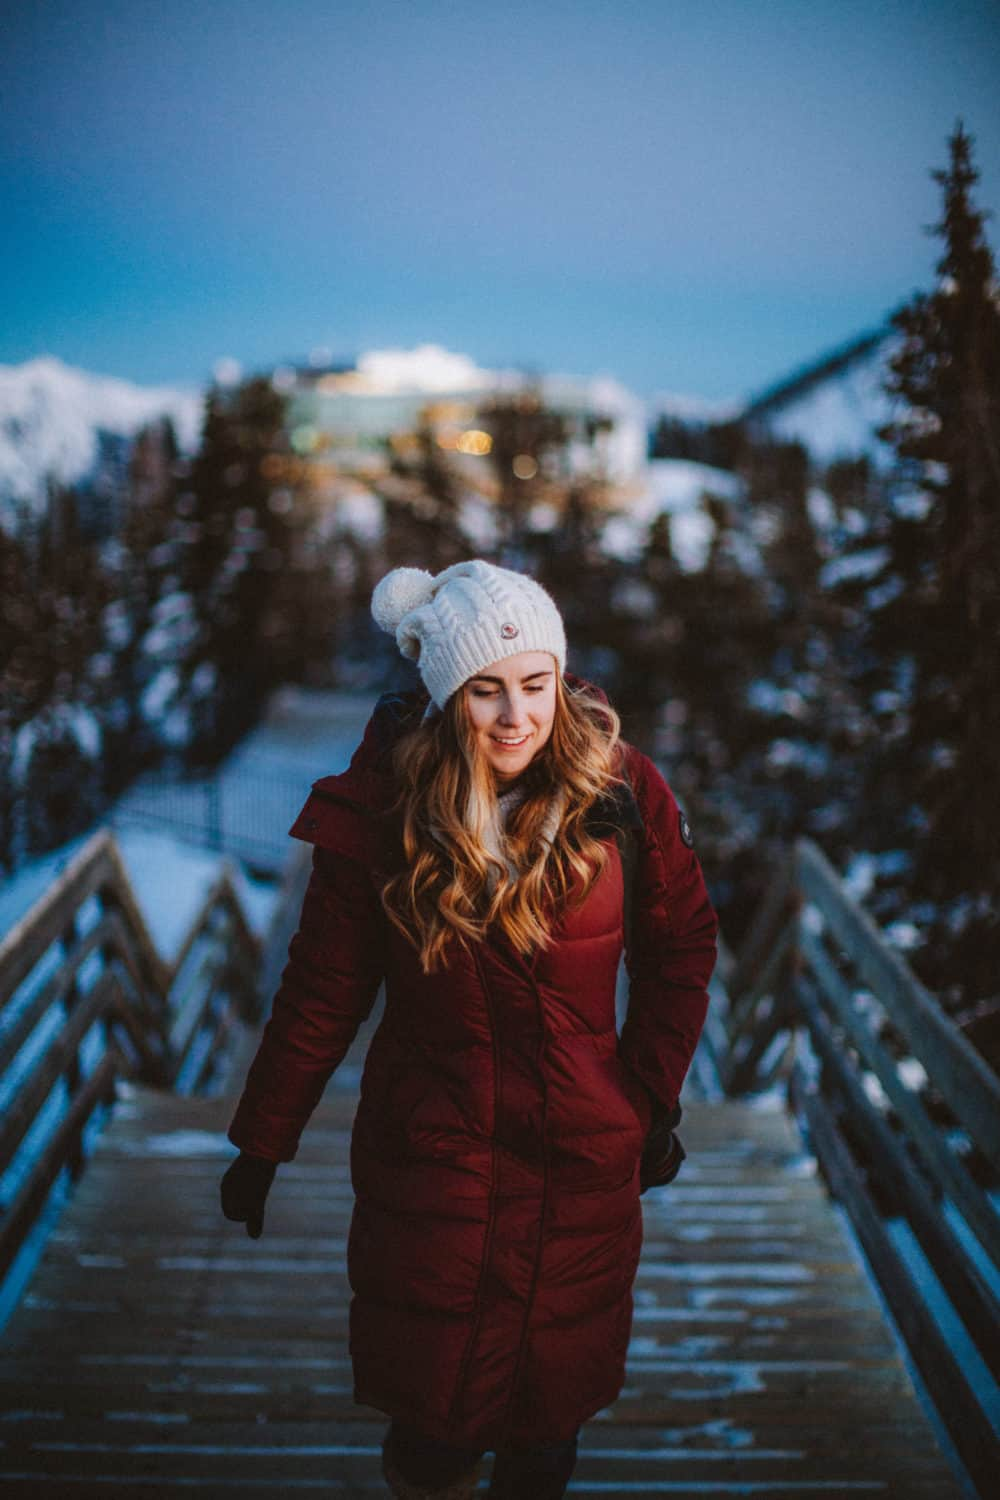 Emily wearing winter parka - What to pack for Banff in winter - TheMandagies.com